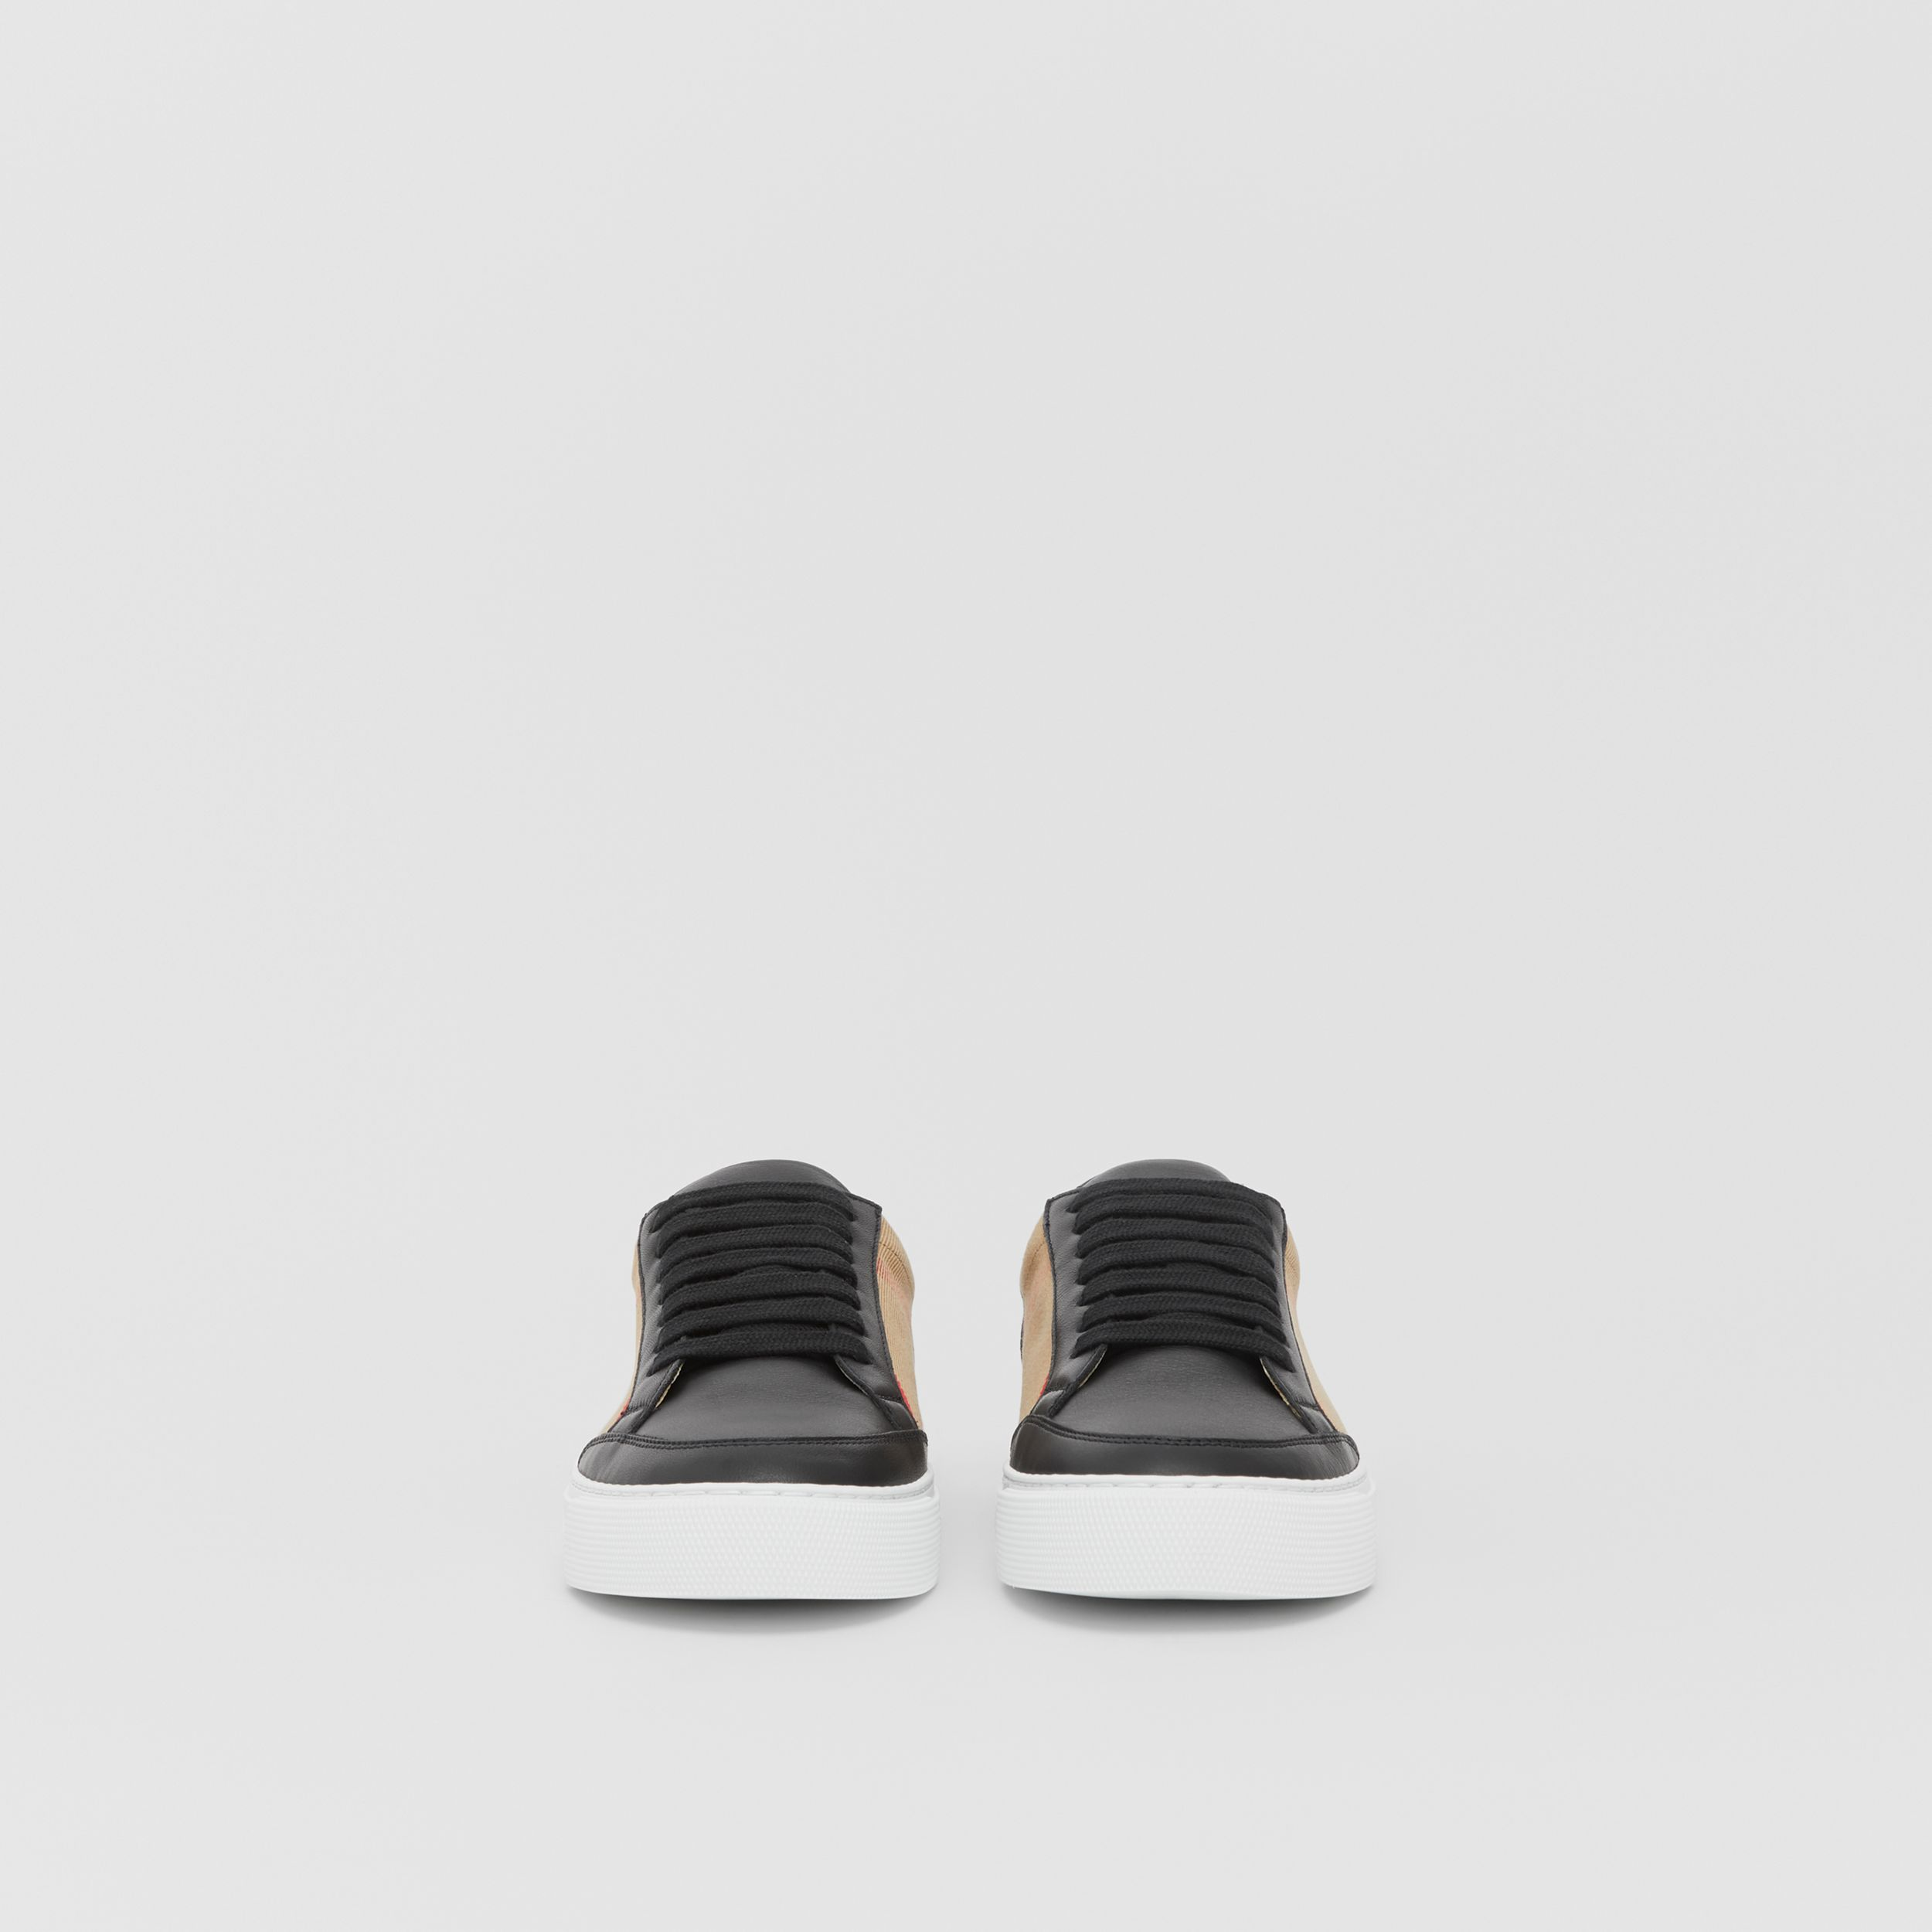 House Check and Leather Sneakers in Black - Women | Burberry - 4